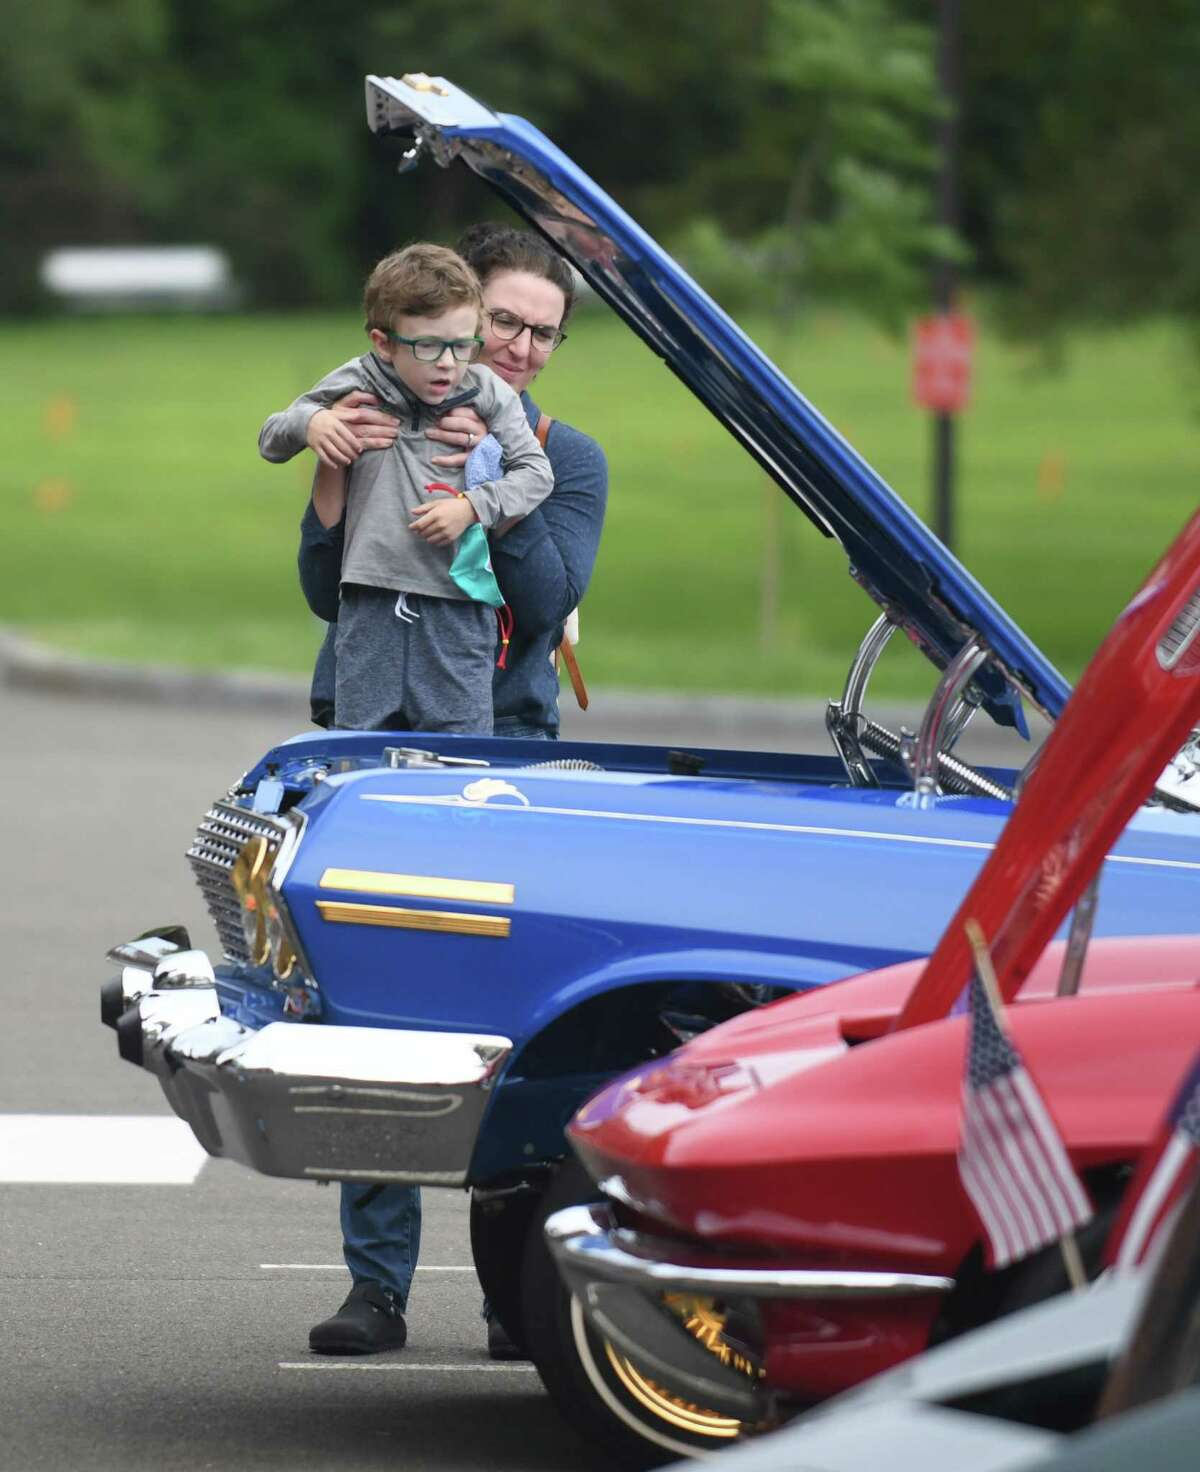 Greenwich's Kate Magaram lifts up her son, Bennett, 5, to see the engine of Chad McCollum's 1963 Chevy Impala, winner of the Best Engine Award, at the Greenwich Police Department Scholarship Fund Benefit Car Show at Town Hall in Greenwich, Conn. Sunday, Aug. 29, 2021. The free event included classic, antique, custom, and exotic cars, motorcycles, vintage fire trucks, and military vehicles.